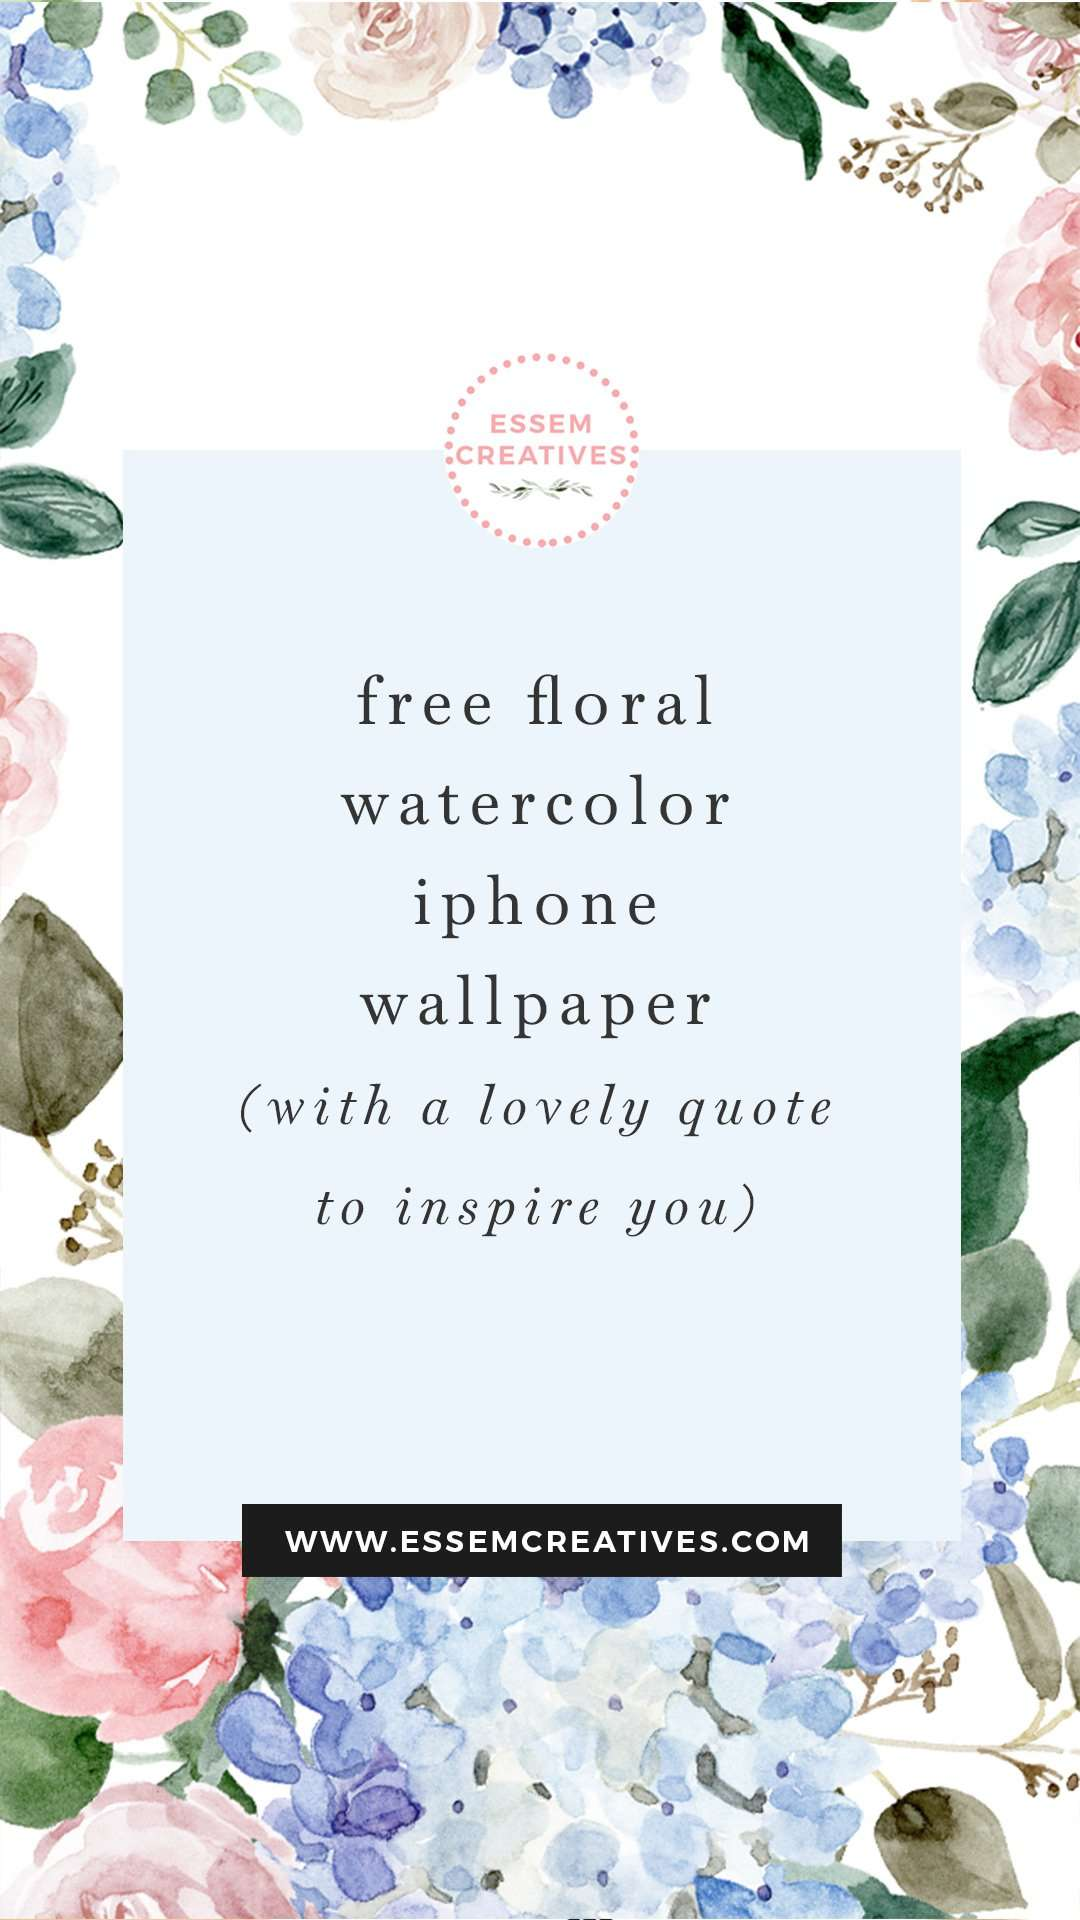 Postcard From Maldives And A Free Floral Watercolor Wallpaper For